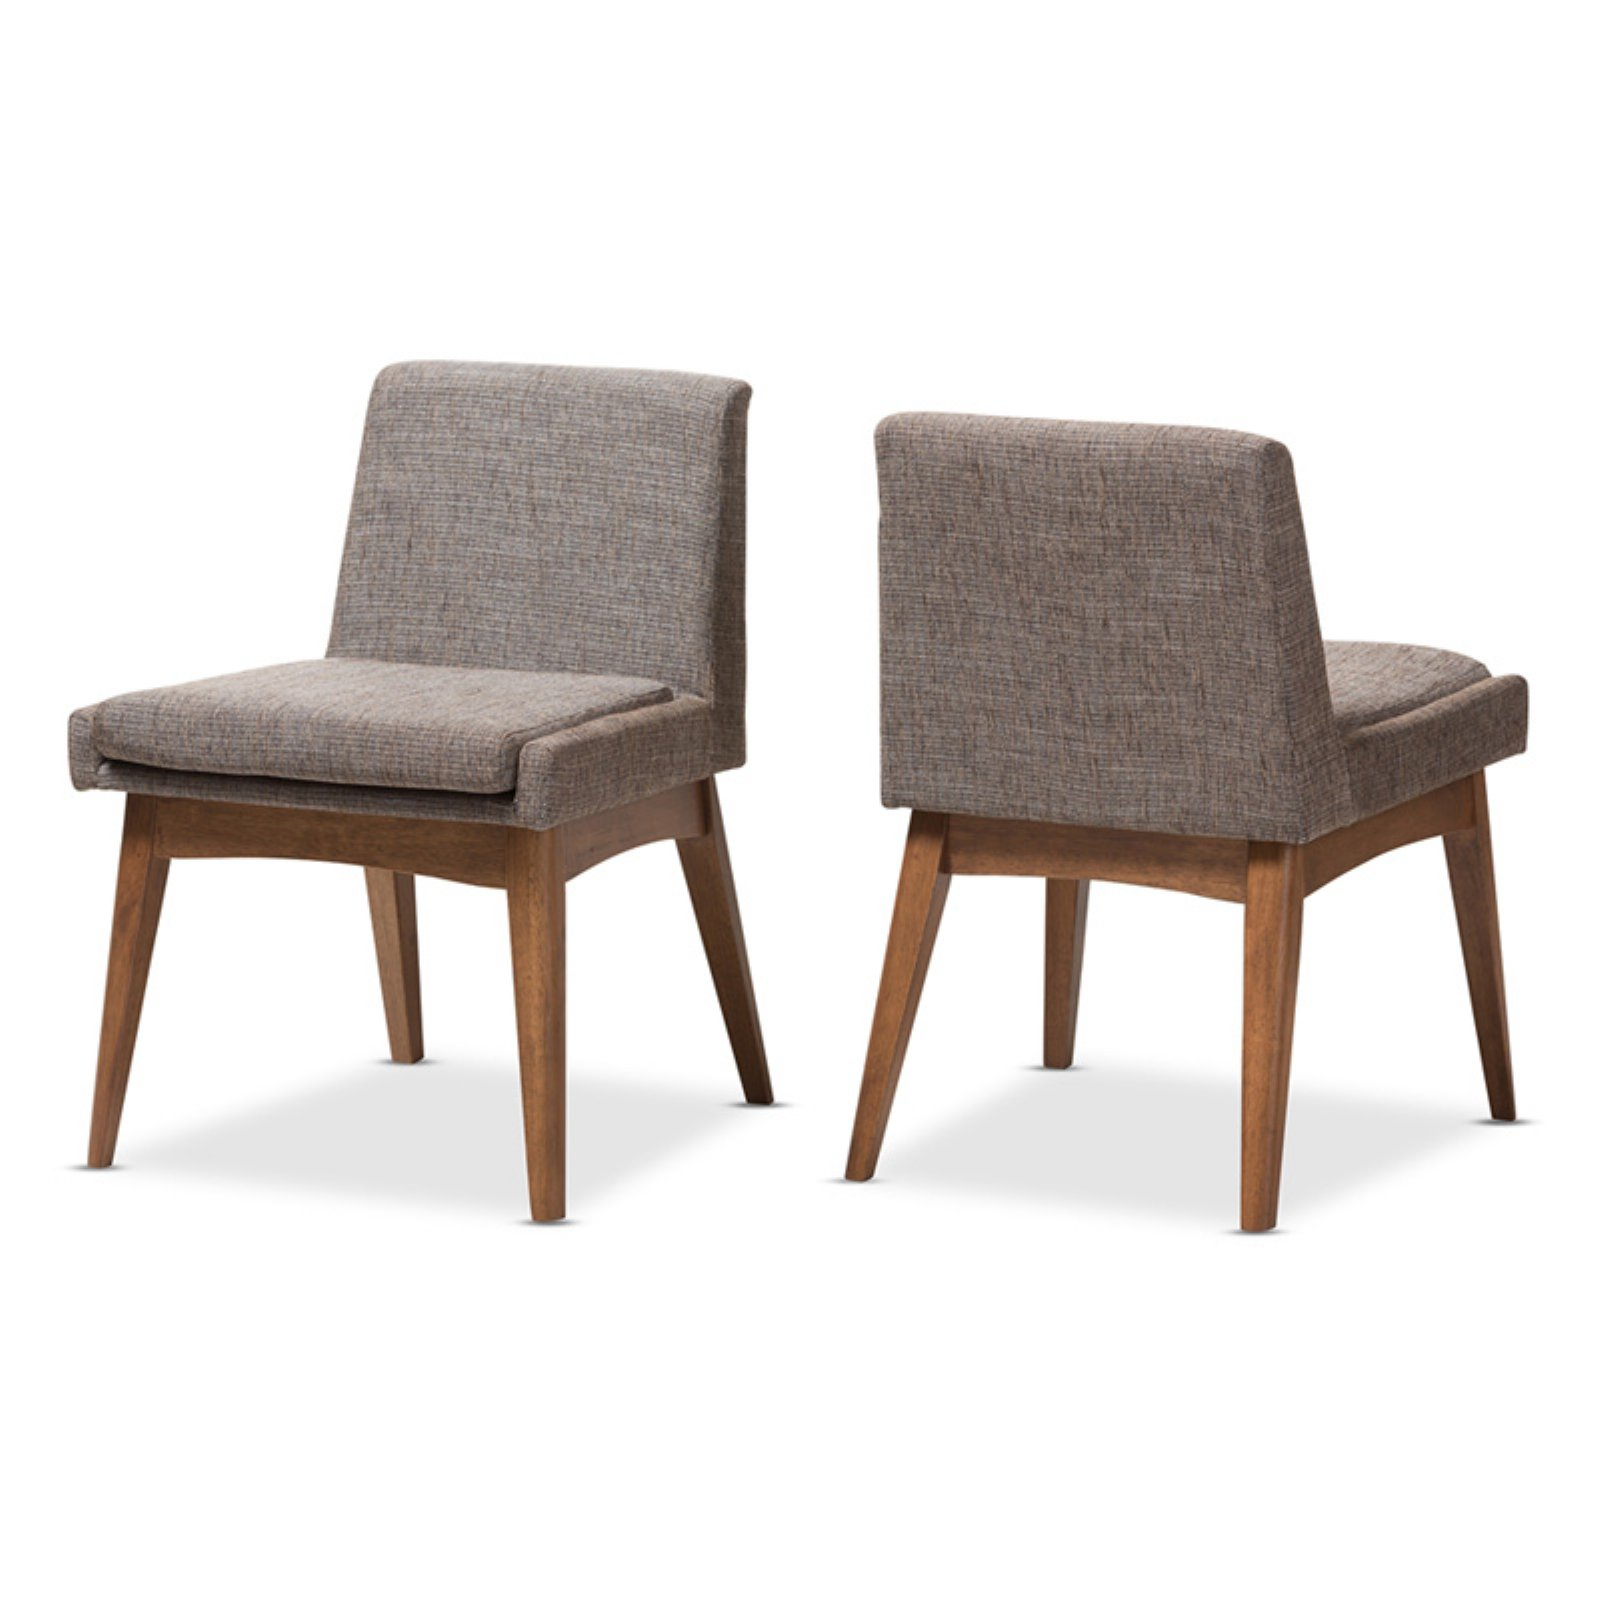 Upholstery For Dining Room Chairs: Baxton Studio Nexus Mid-Century Modern Walnut Finish And